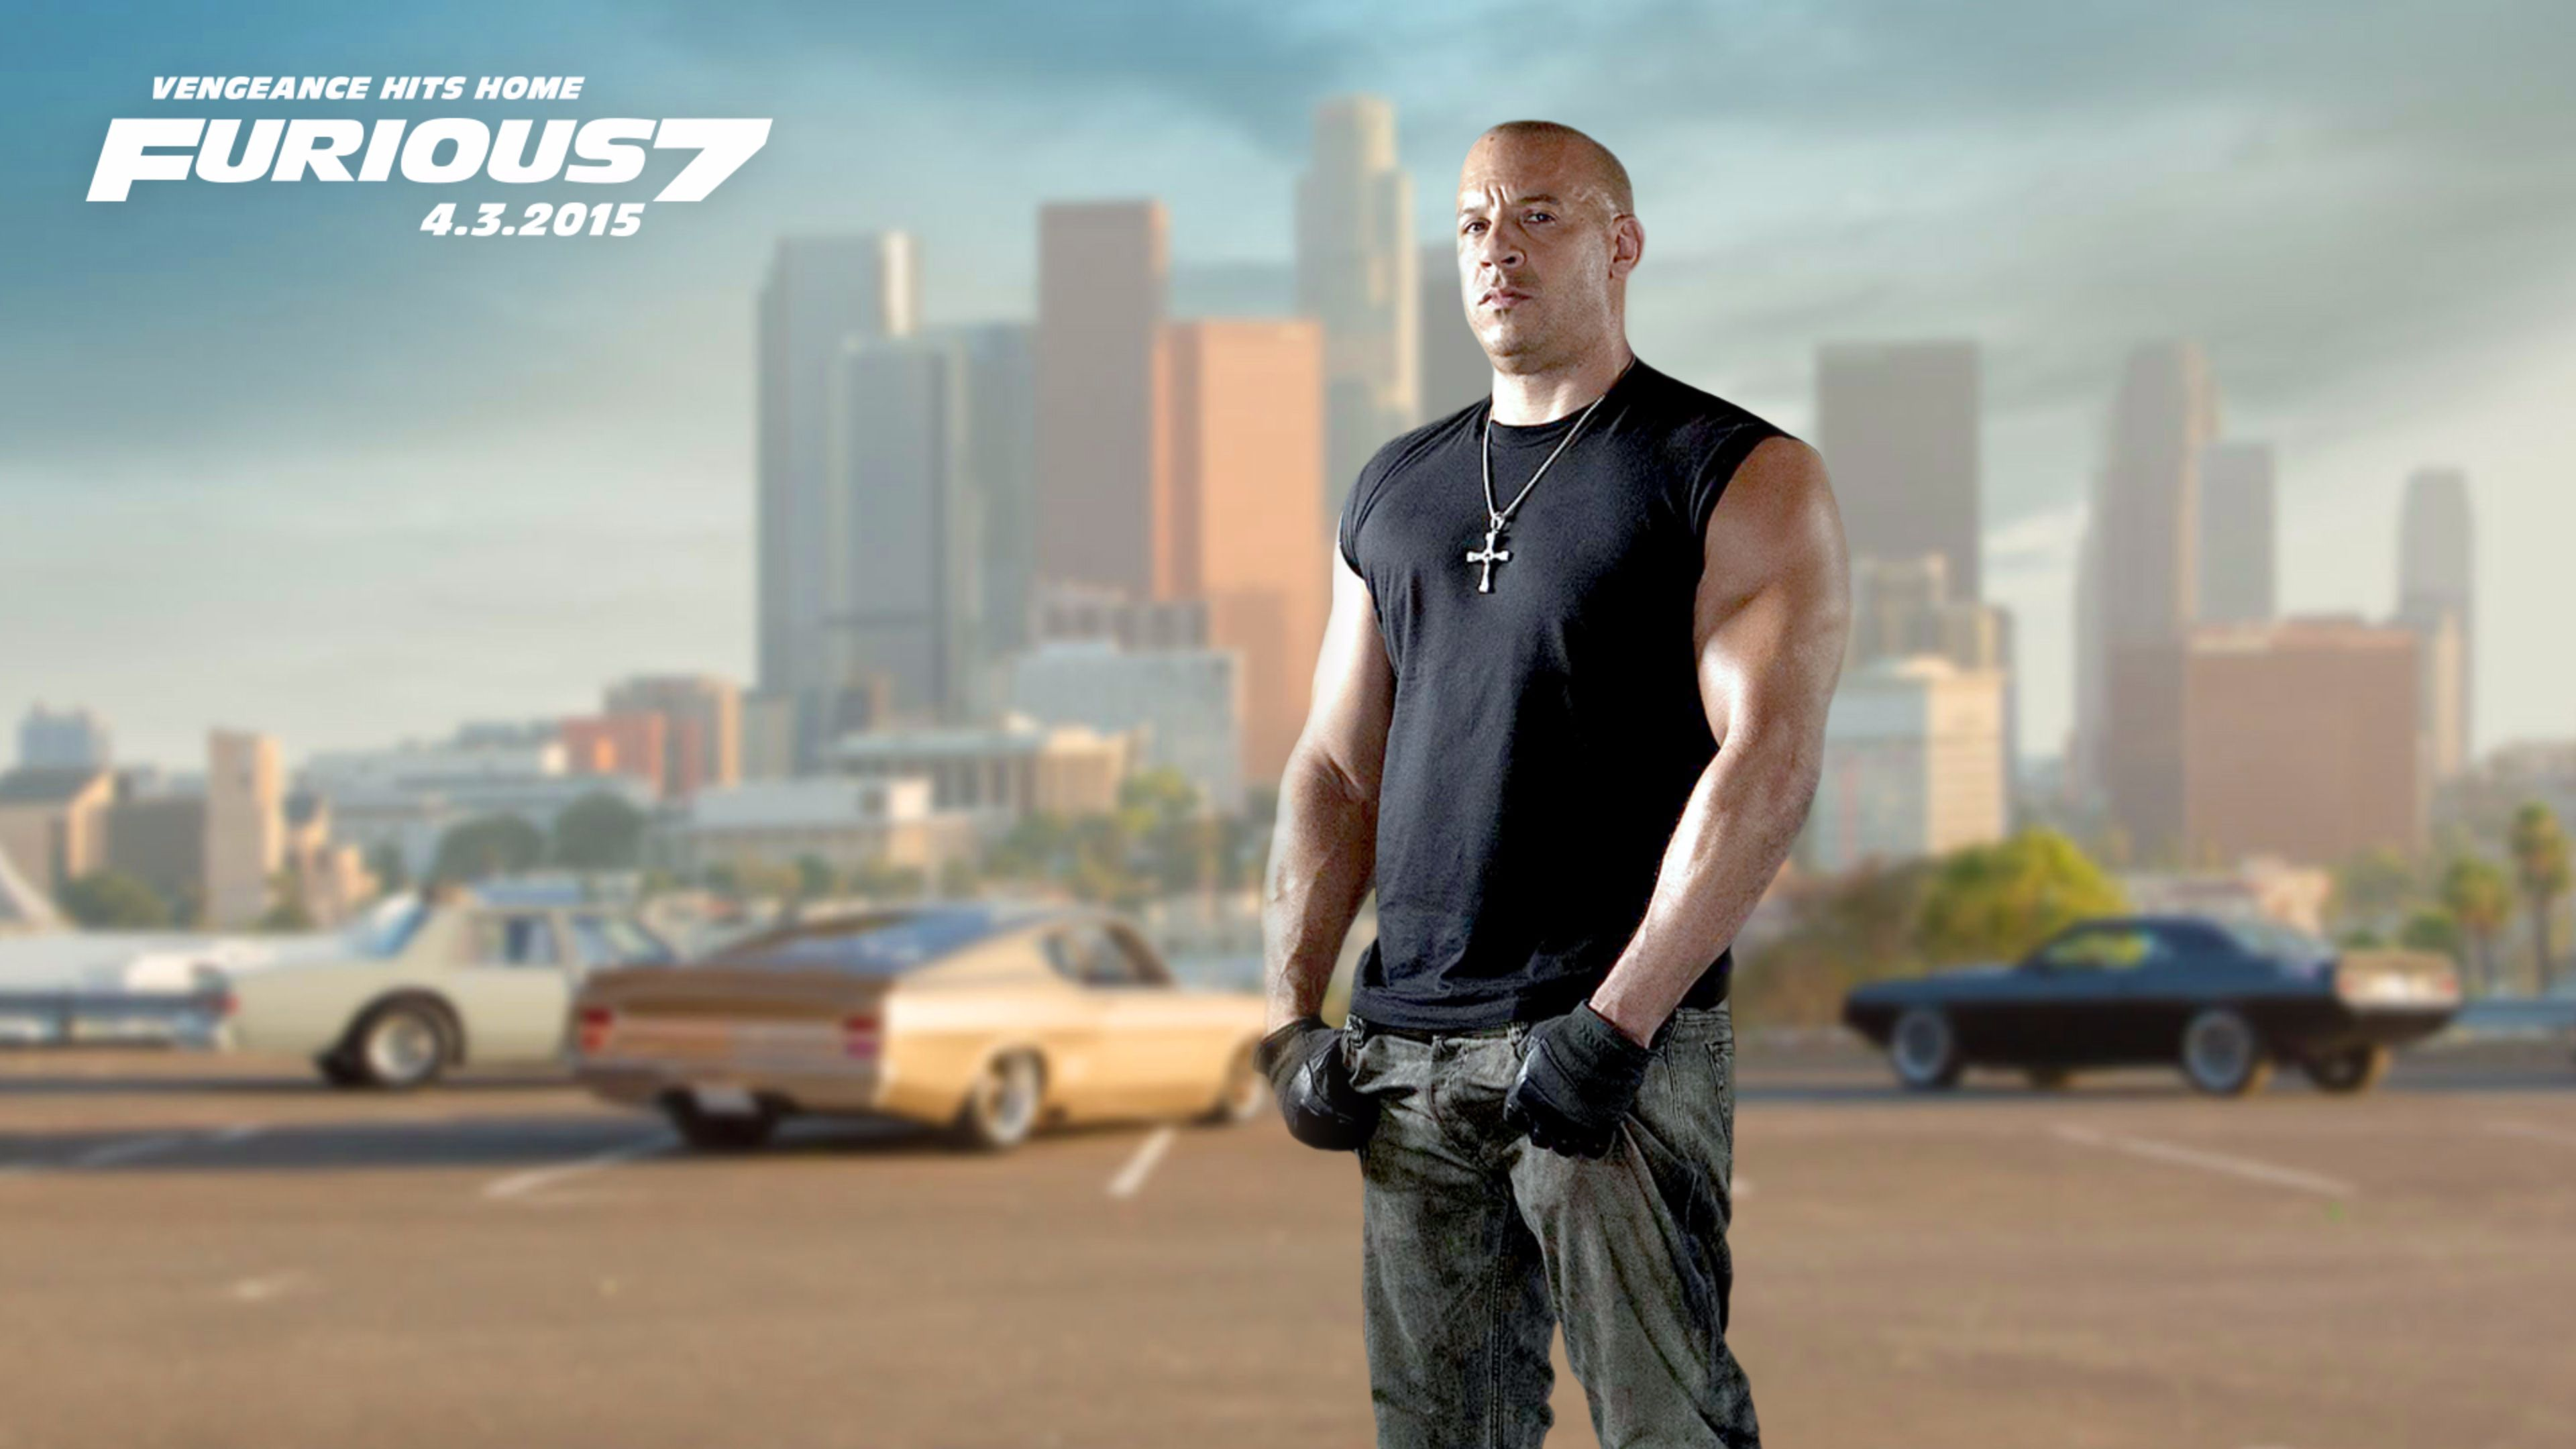 Custom Furious 7 wallpaper